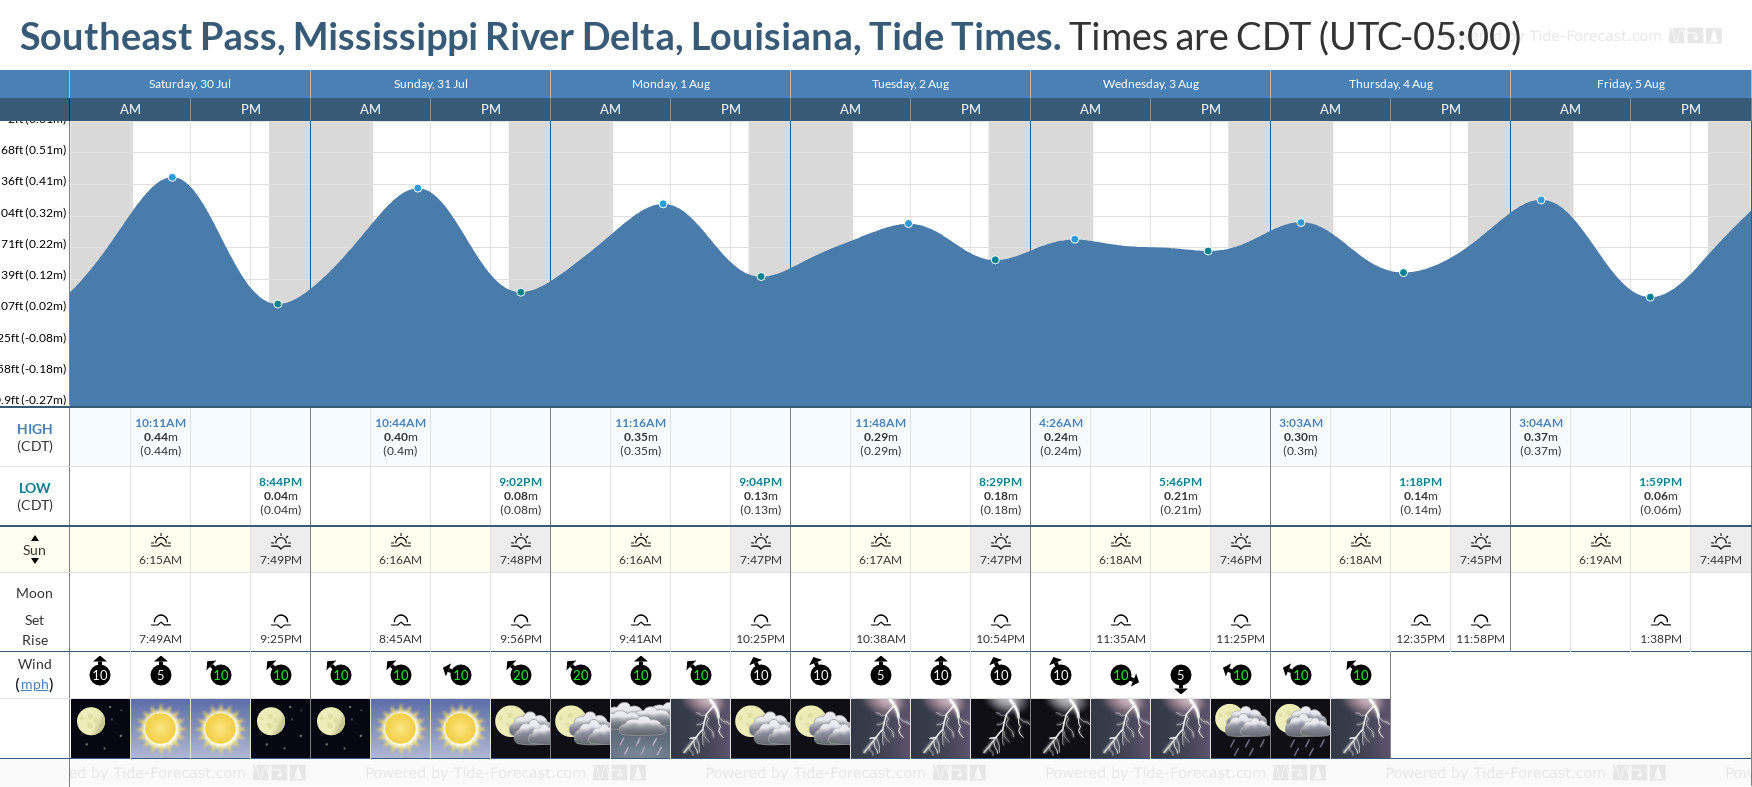 Southeast Pass, Mississippi River Delta, Louisiana Tide Chart including high and low tide tide times for the next 7 days